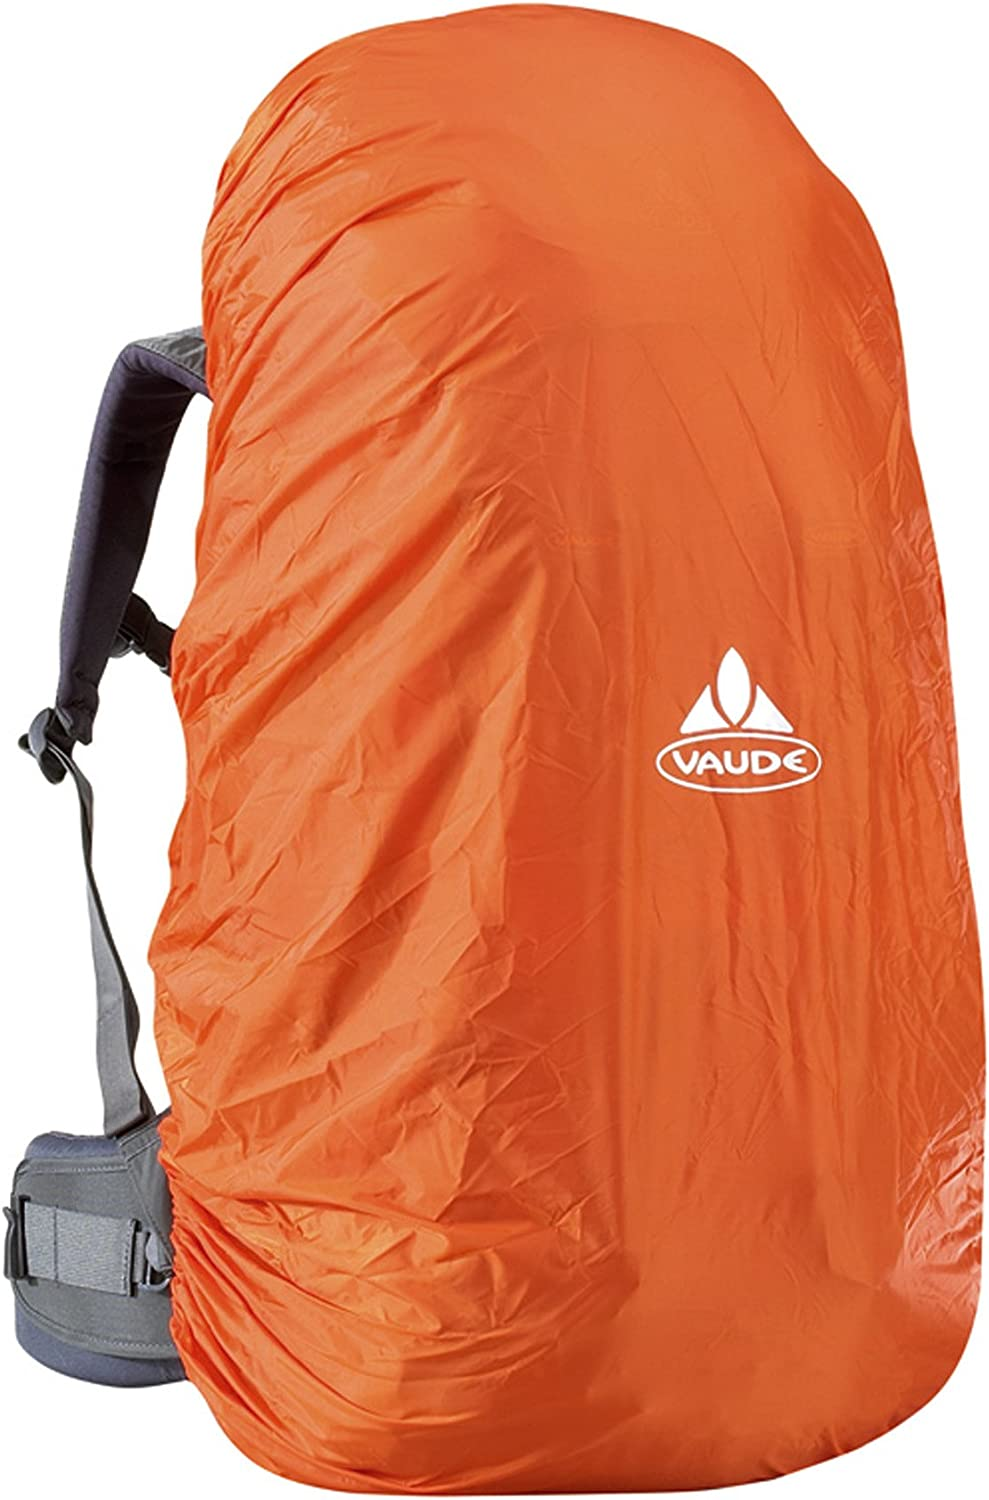 Vaude Raincover for Backpacks 615 l orange Backpack Accessories